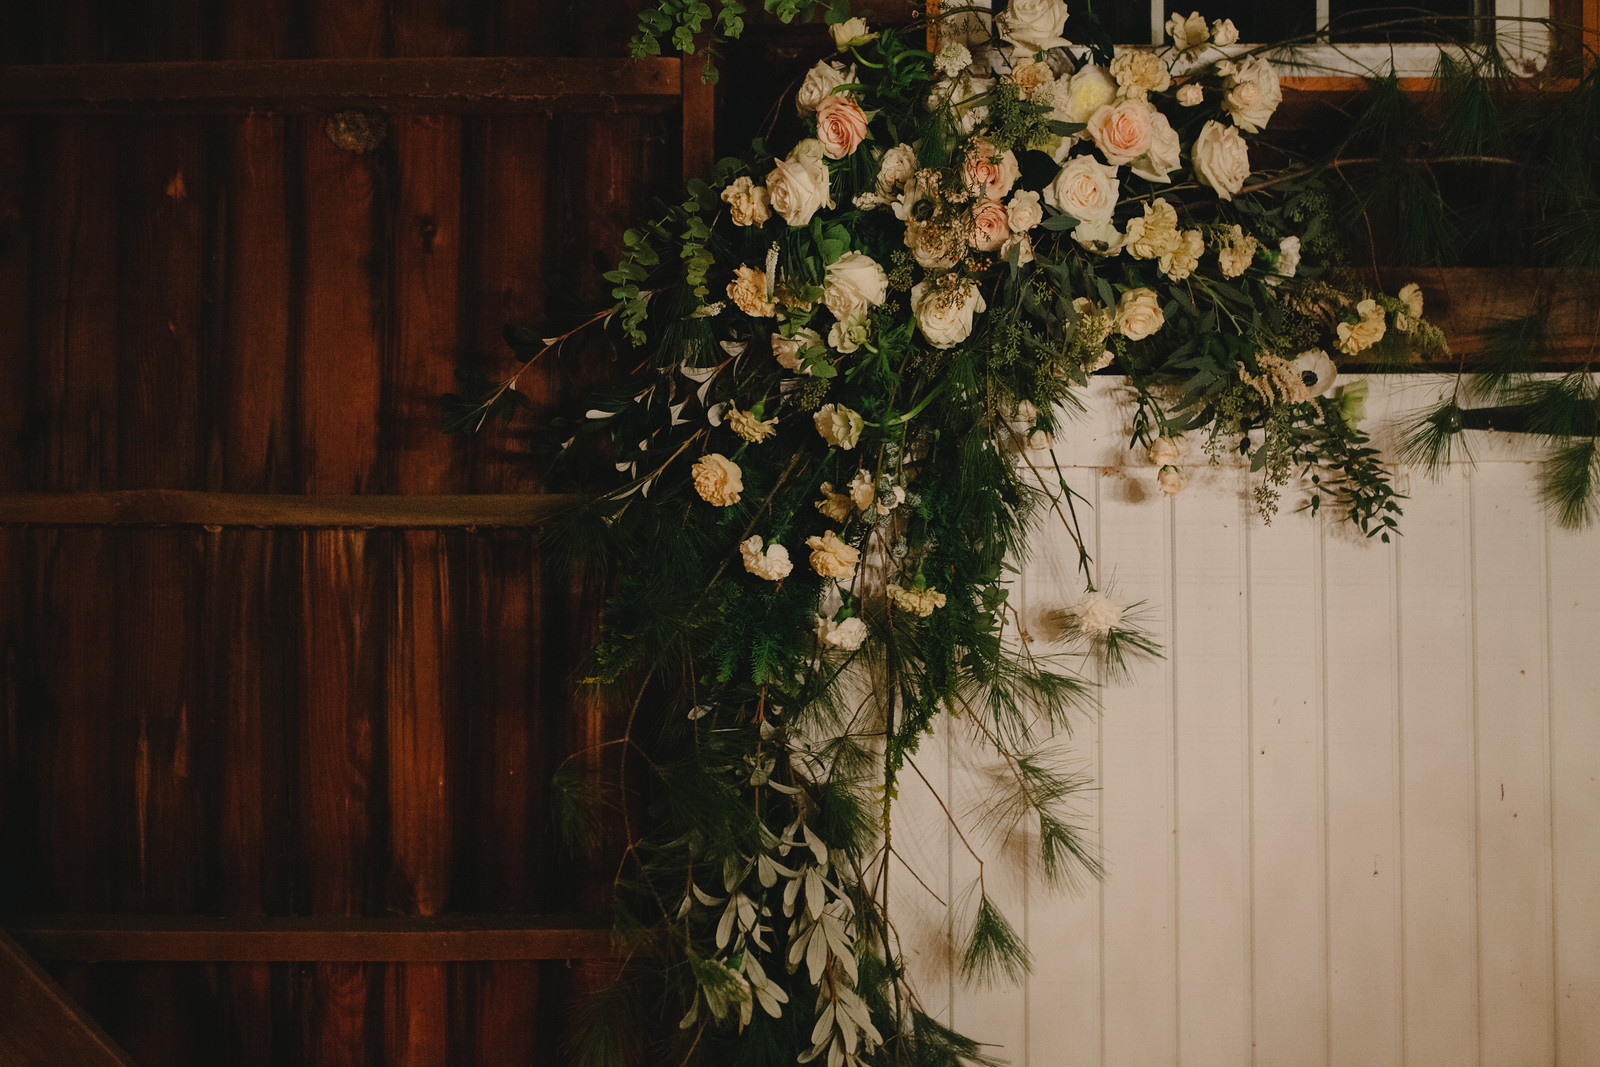 A natural wedding floral arch over a barn door for a winter wedding